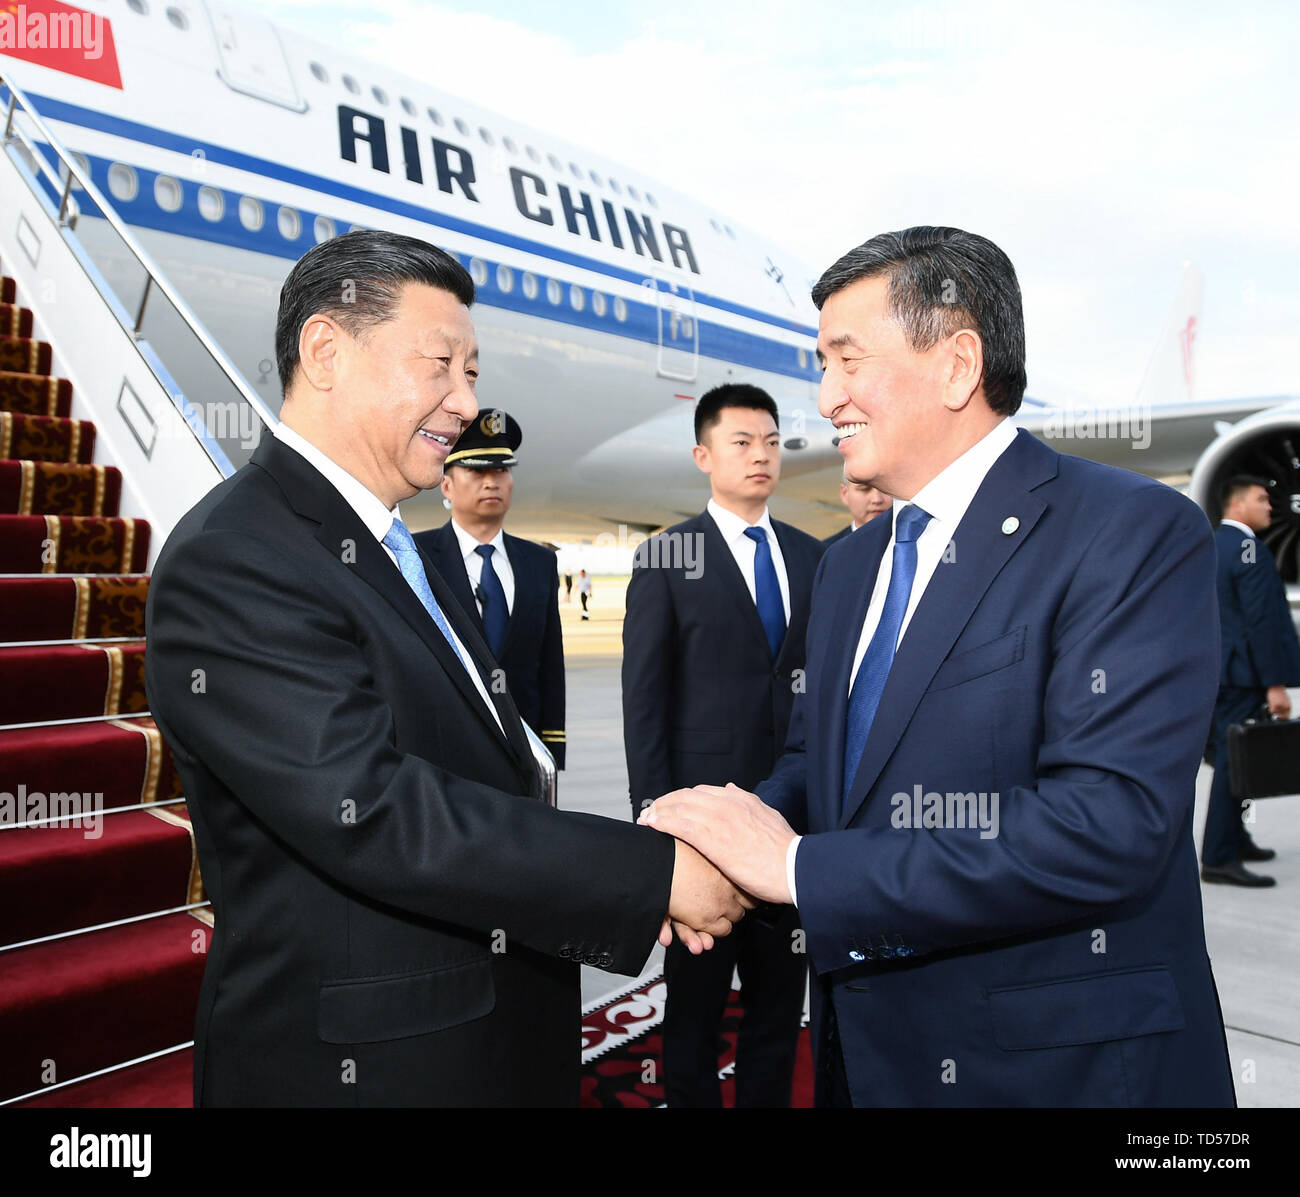 Bishkek, Kyrgyzstan. 12th June, 2019. Chinese President Xi Jinping is received by his Kyrgyz counterpart Sooronbay Jeenbekov upon his arrival in Bishkek, Kyrgyzstan, June 12, 2019. Xi arrived here Wednesday for a state visit to Kyrgyzstan and the 19th Shanghai Cooperation Organization (SCO) summit. Credit: Xie Huanchi/Xinhua/Alamy Live News - Stock Image